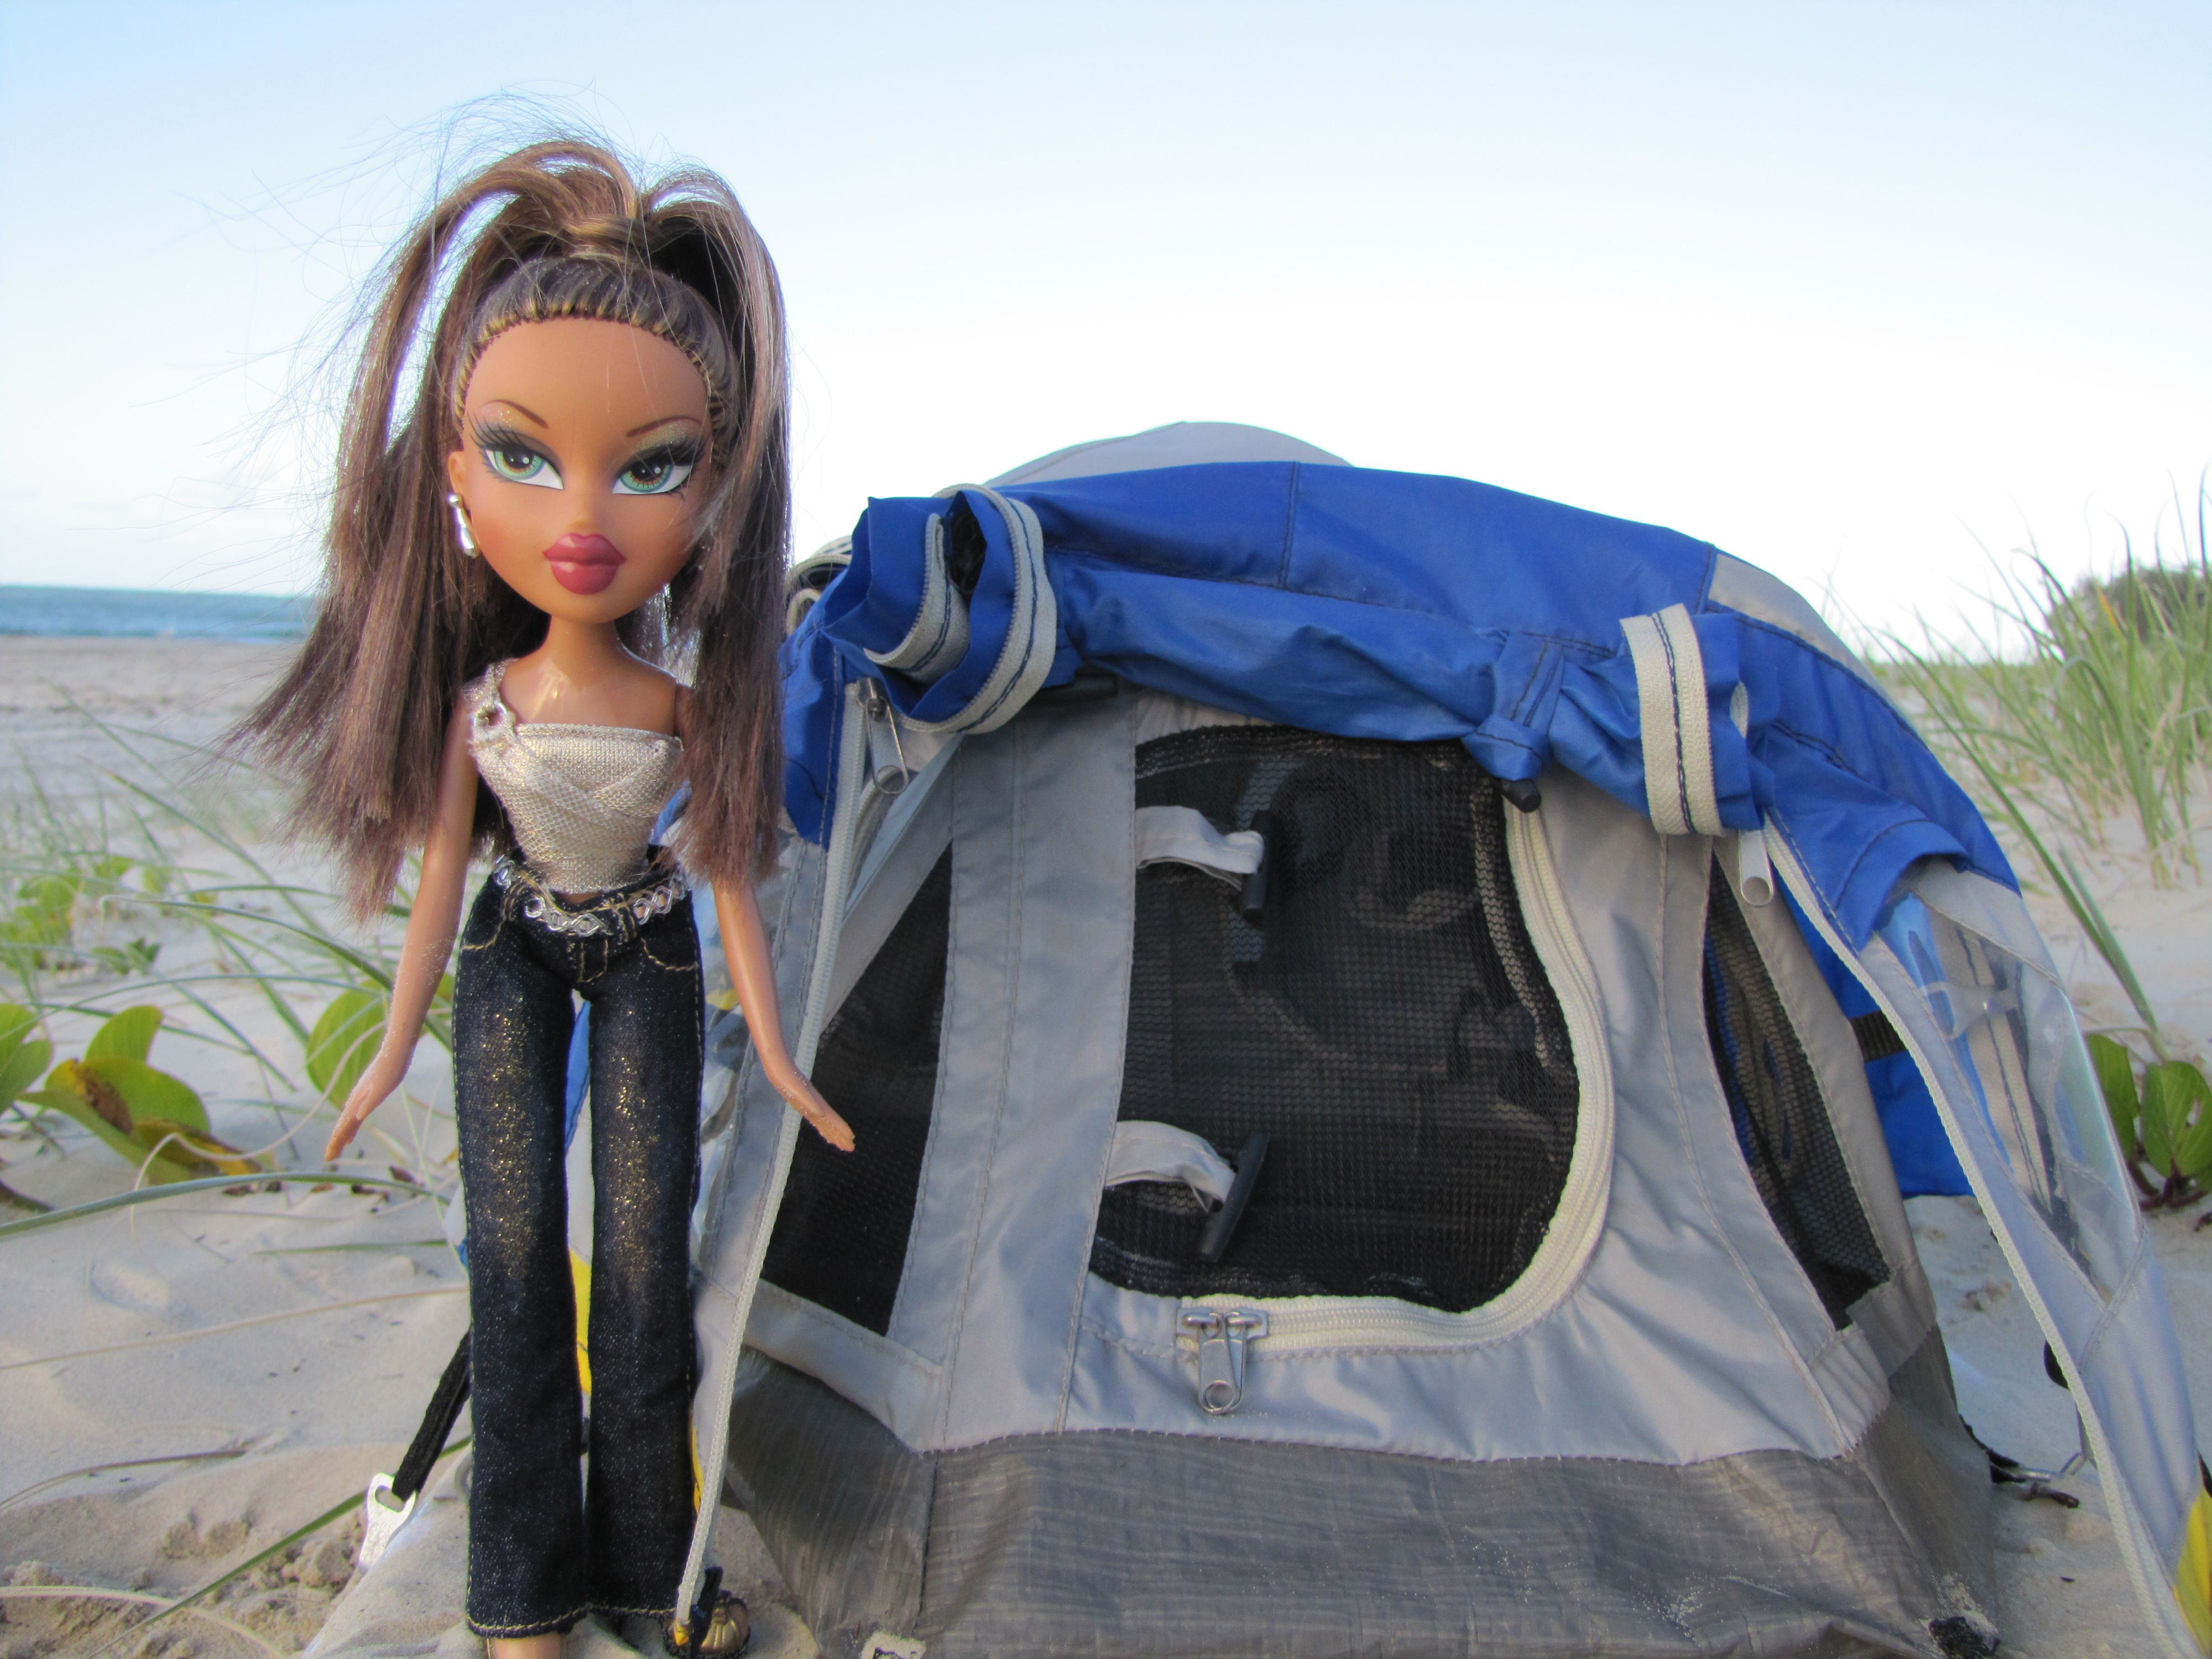 I am all about making camping glamorous. There's a term for it - Glamping! www.rainbow-beach-hire-a-camp.com.au